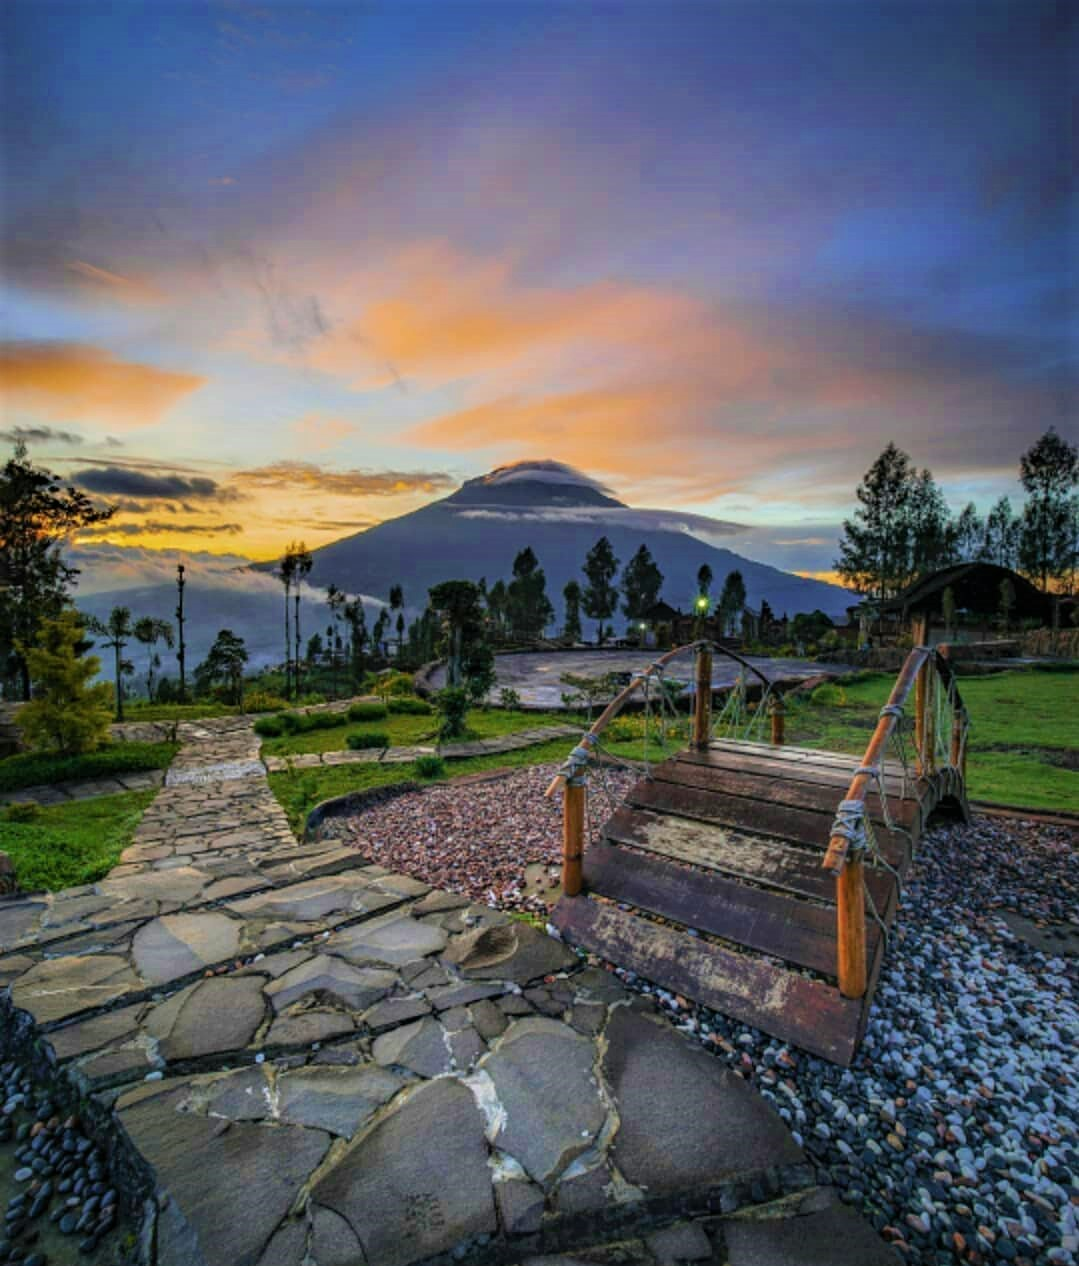 Tempat Hunting Sunrise Sunset Di Indonesia